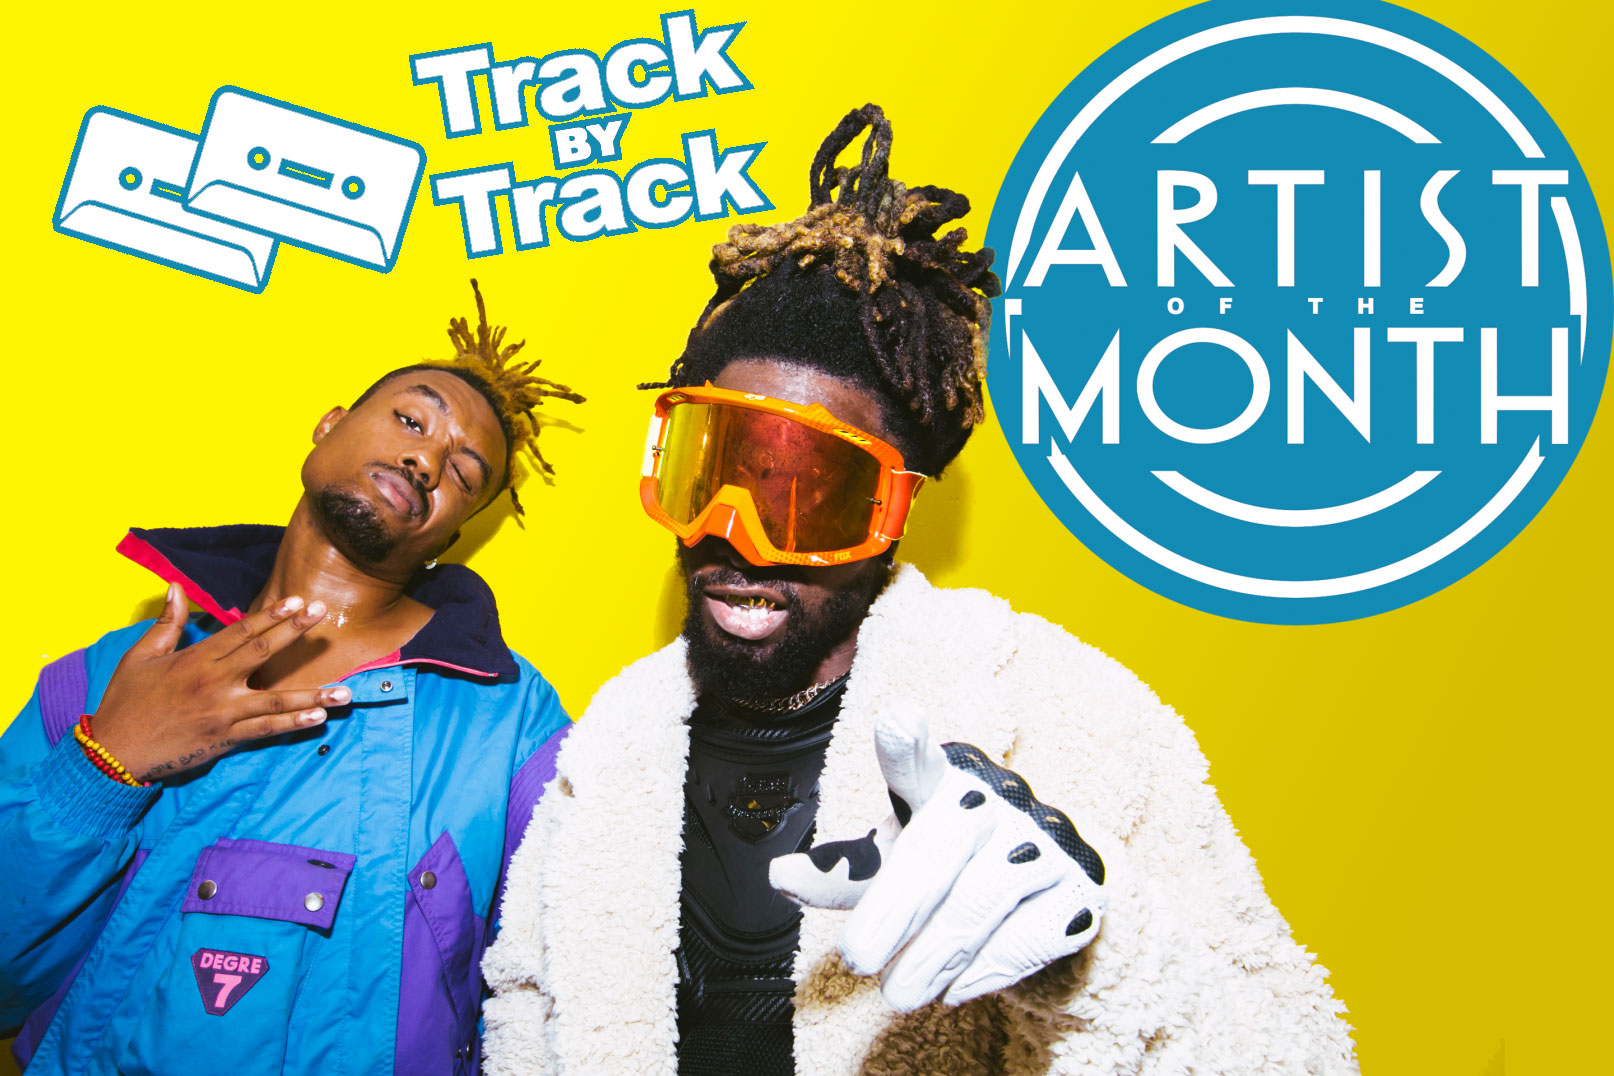 EarthGang Track by Track, photo by Anthony Supreme